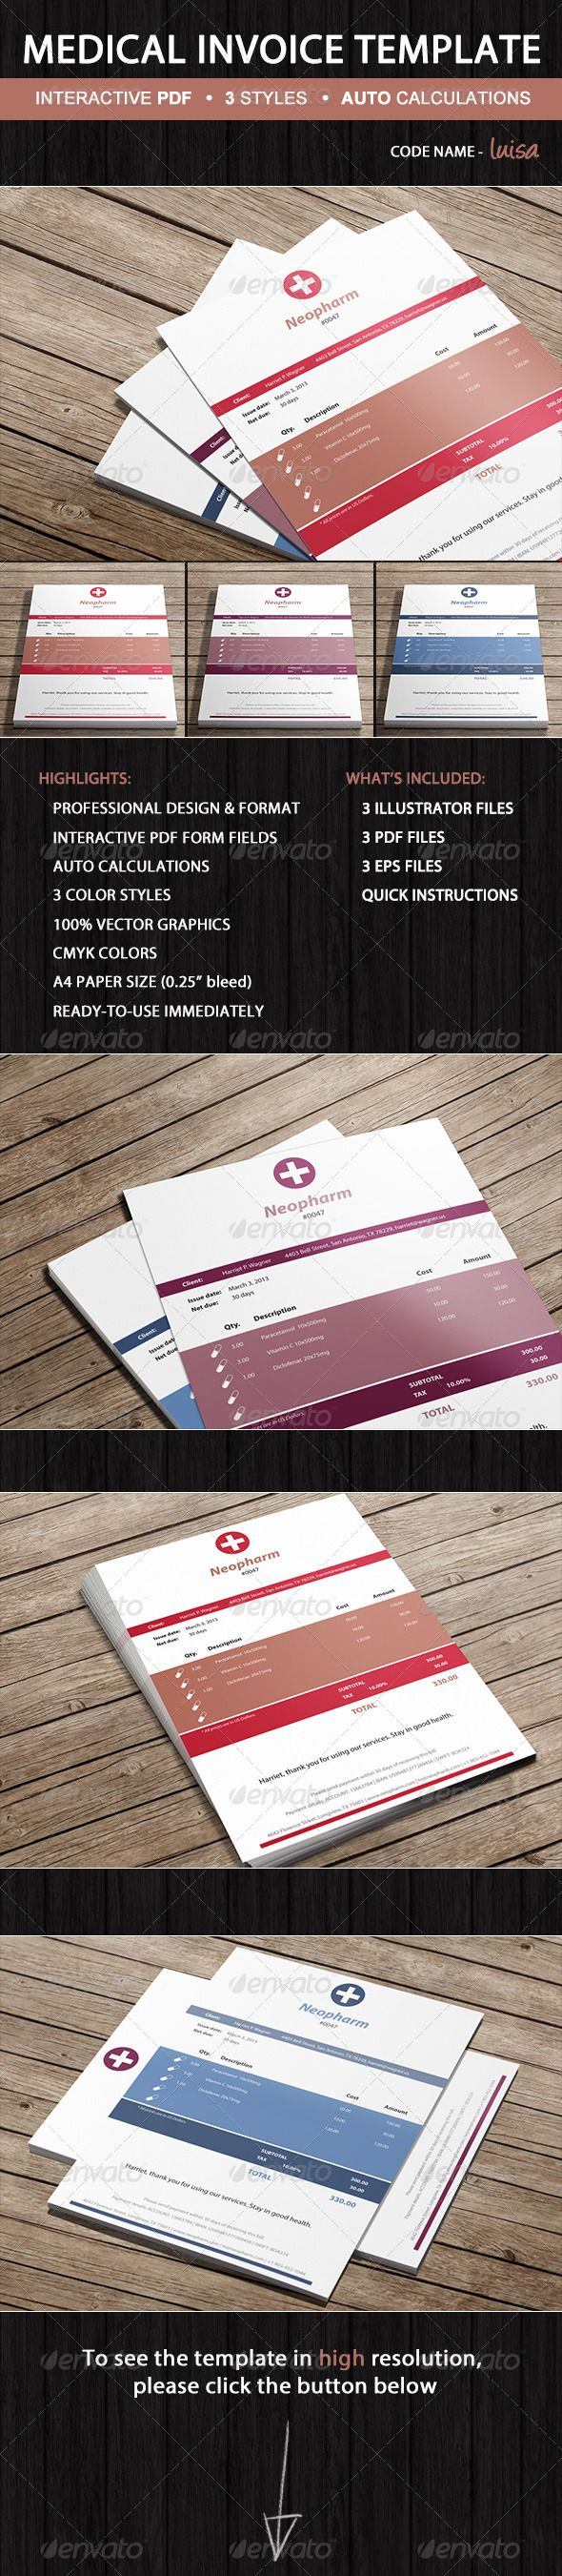 Medical Pharmacy Invoice Template - Luisa #GraphicRiver Invoice Luisa is…